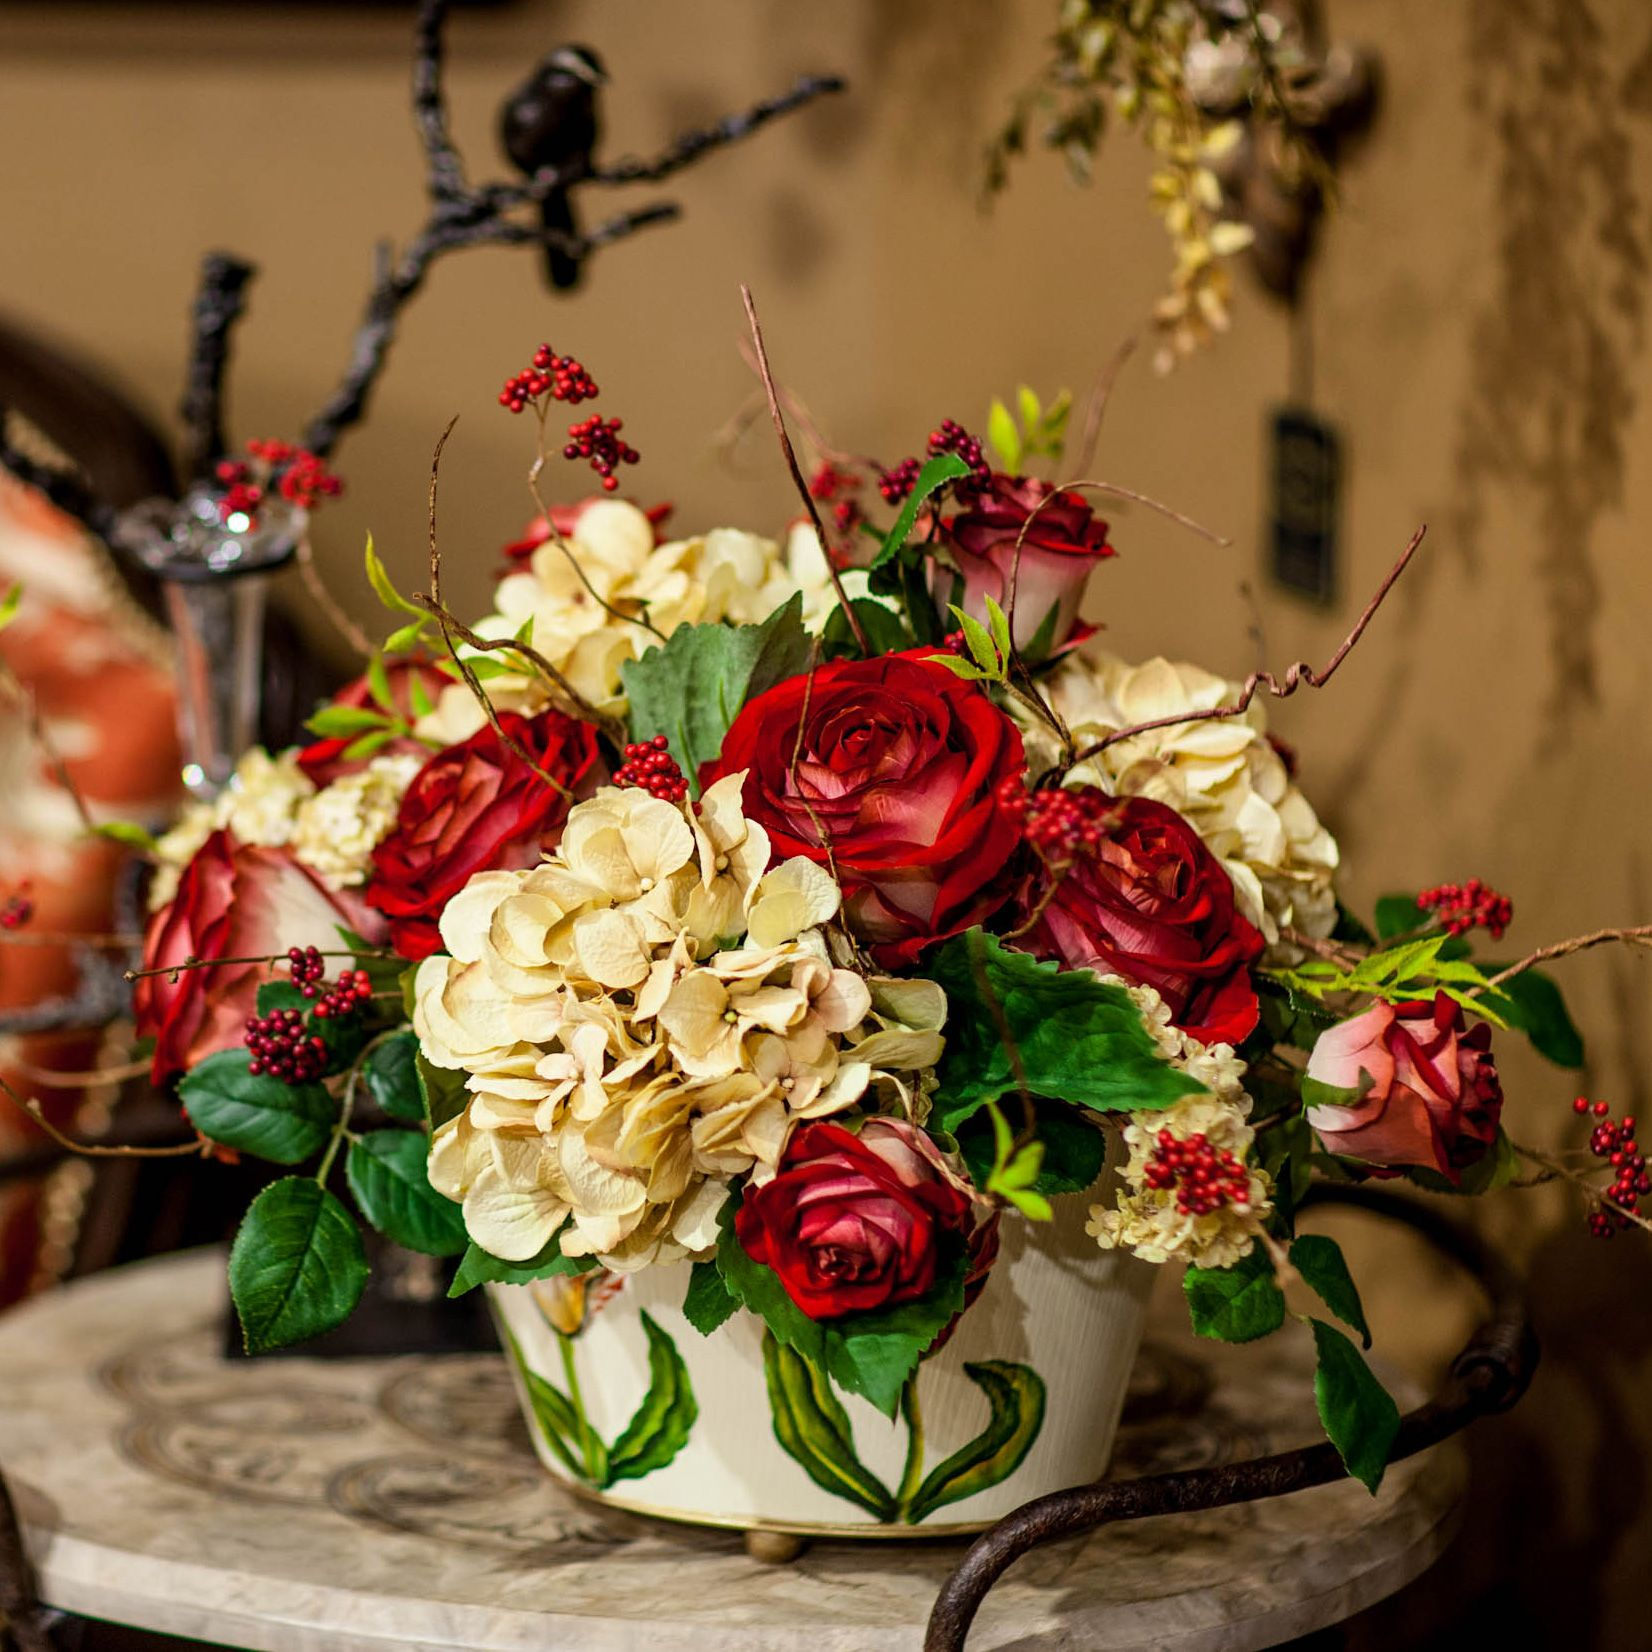 Fake Floral Arrangements For Home Luxury Silk Floral Arrangements Everyday Flower